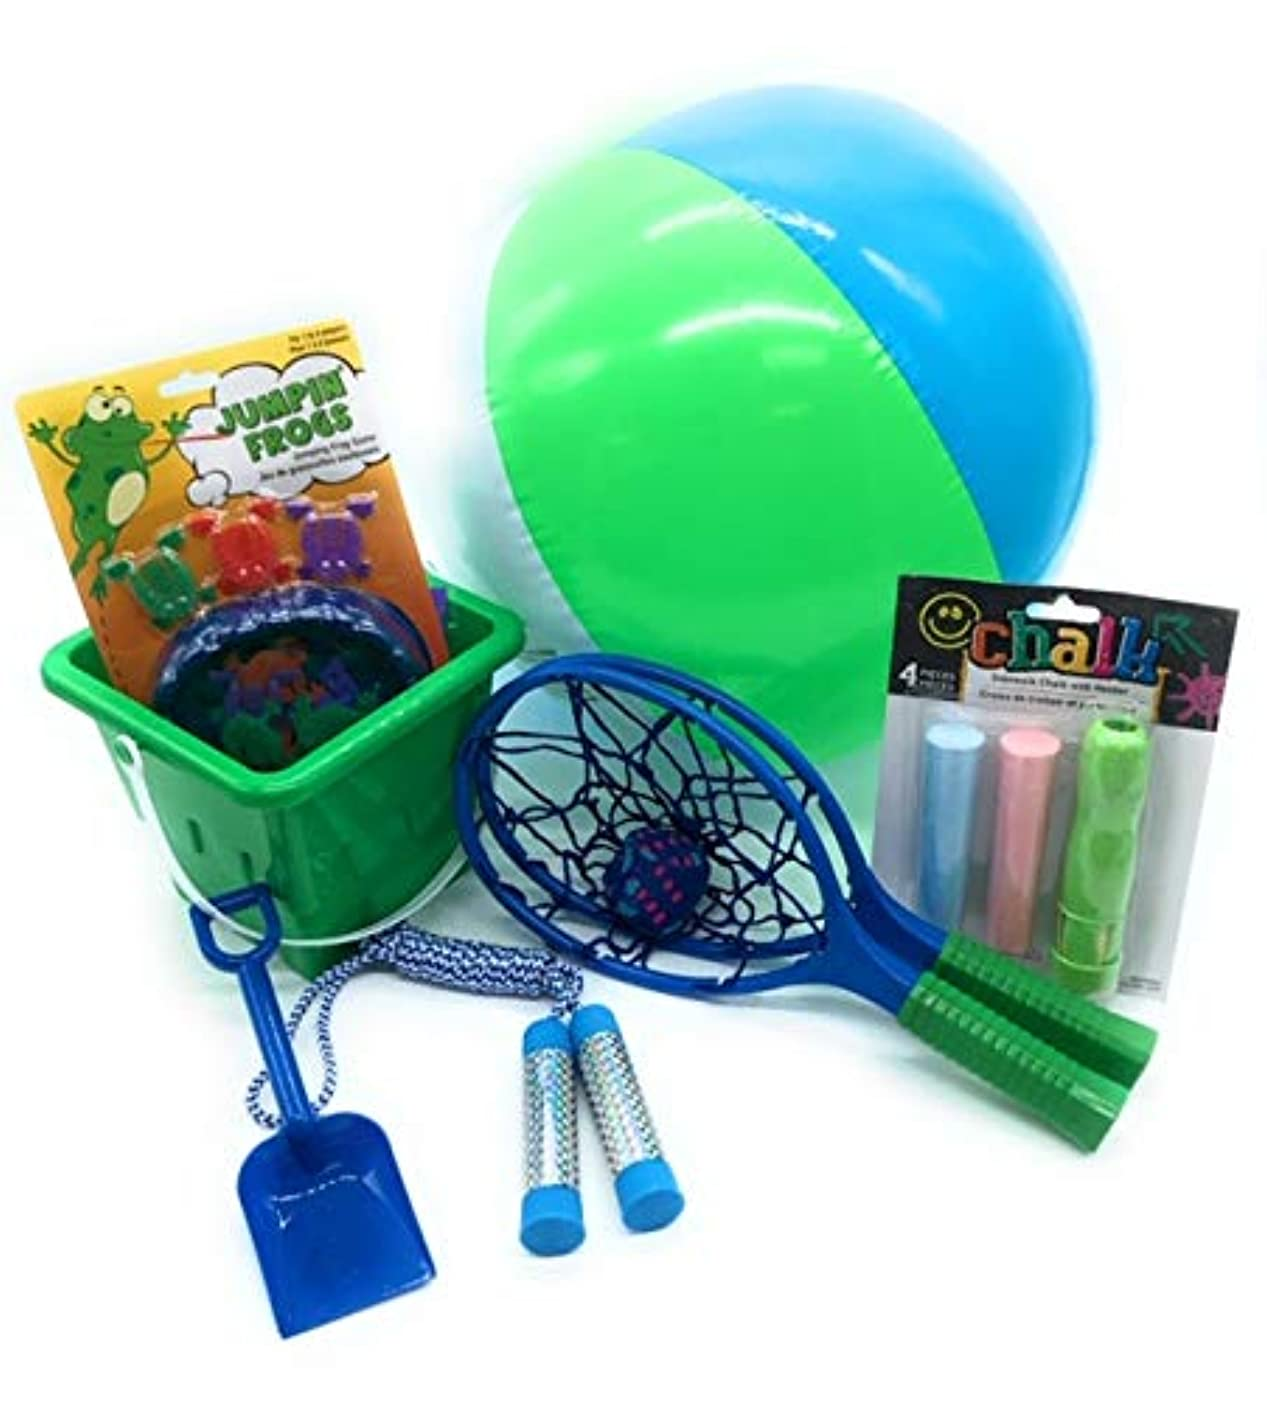 Outdoor Fun Healthy Kids Toys and Play Time Bundle - Candy Free with Sand Bucket, Shovel, Beach Ball, Jumping Frogs Game, Chalk, Jump Rope, and Splash Catchers Ball Game